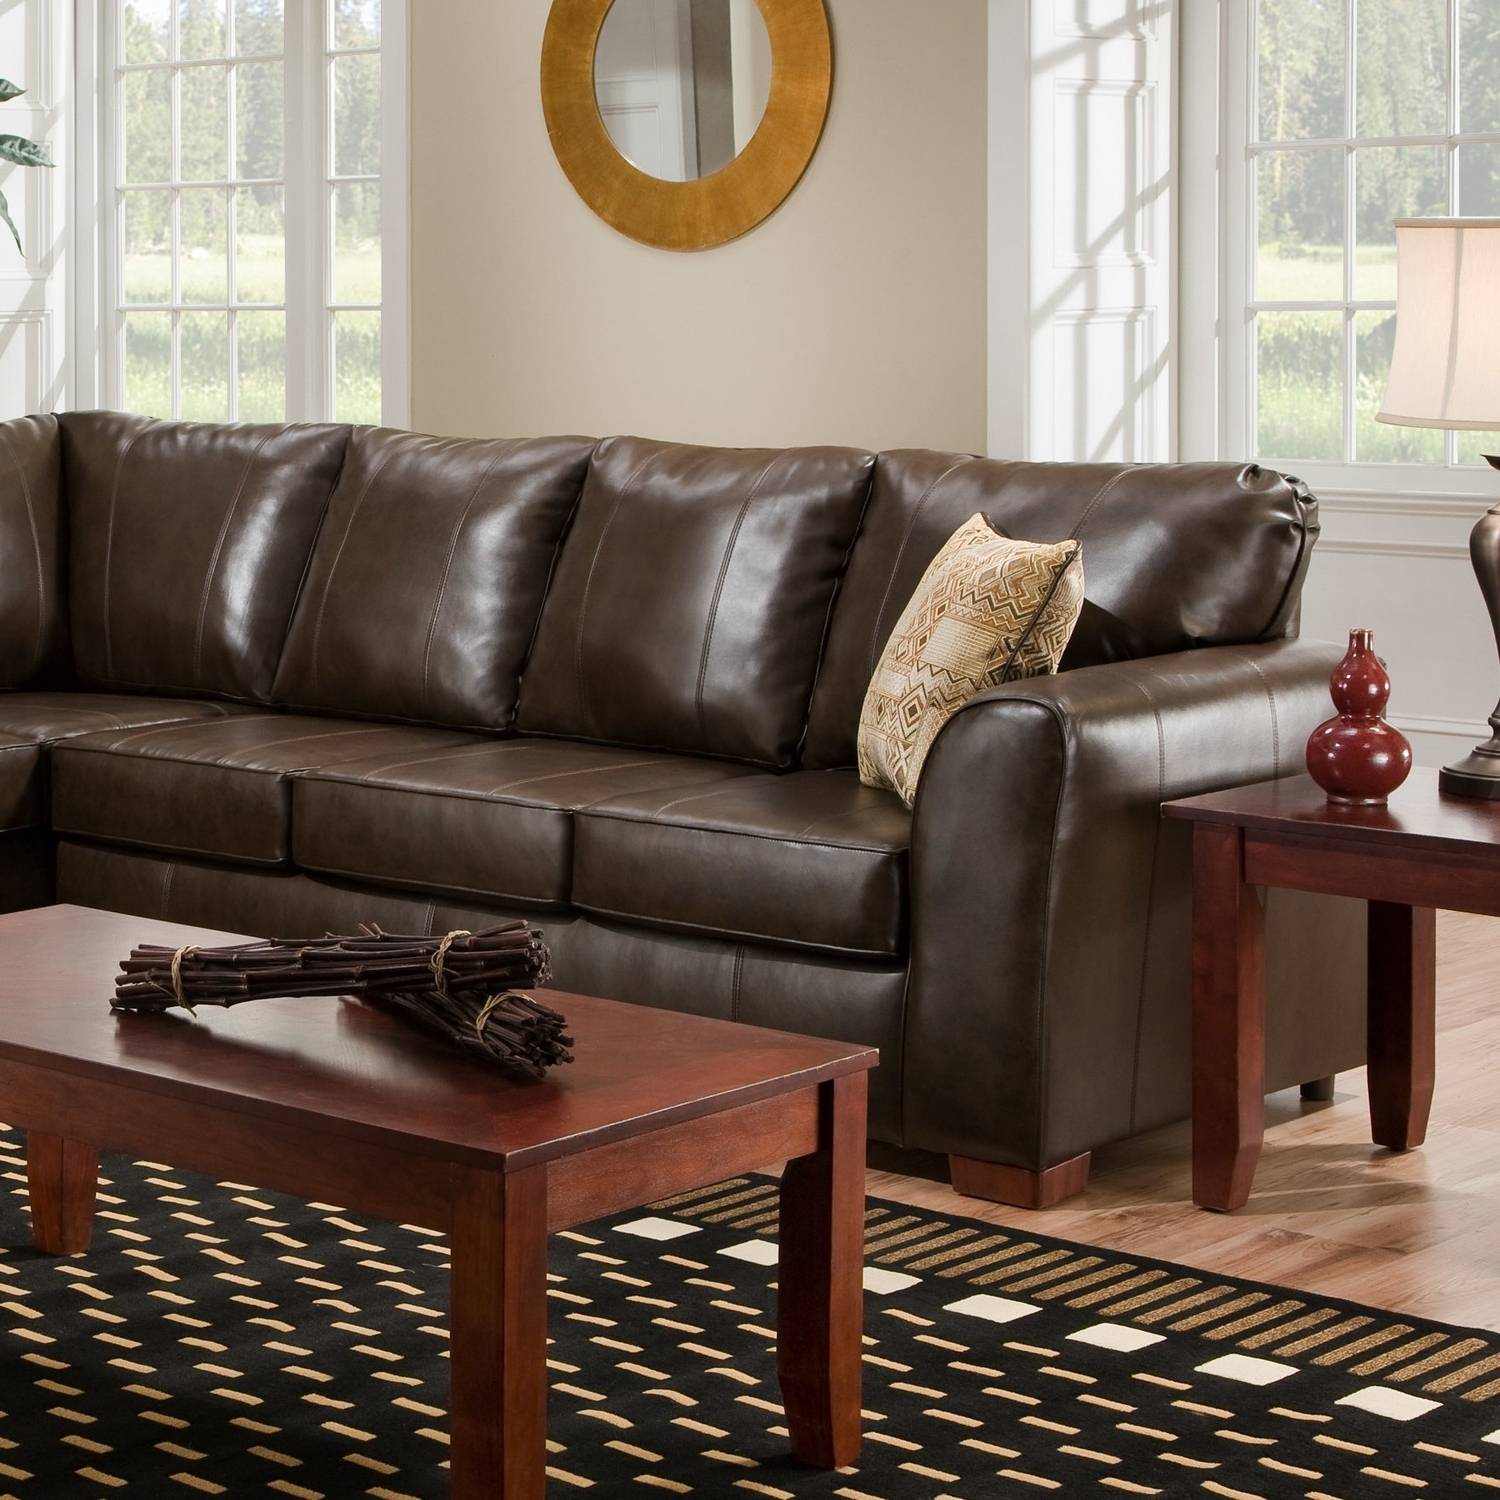 Bedroom: Houzz Living Rooms With Cheap Sectional Couches Inside Most Recent Houzz Sectional Sofas (View 4 of 15)